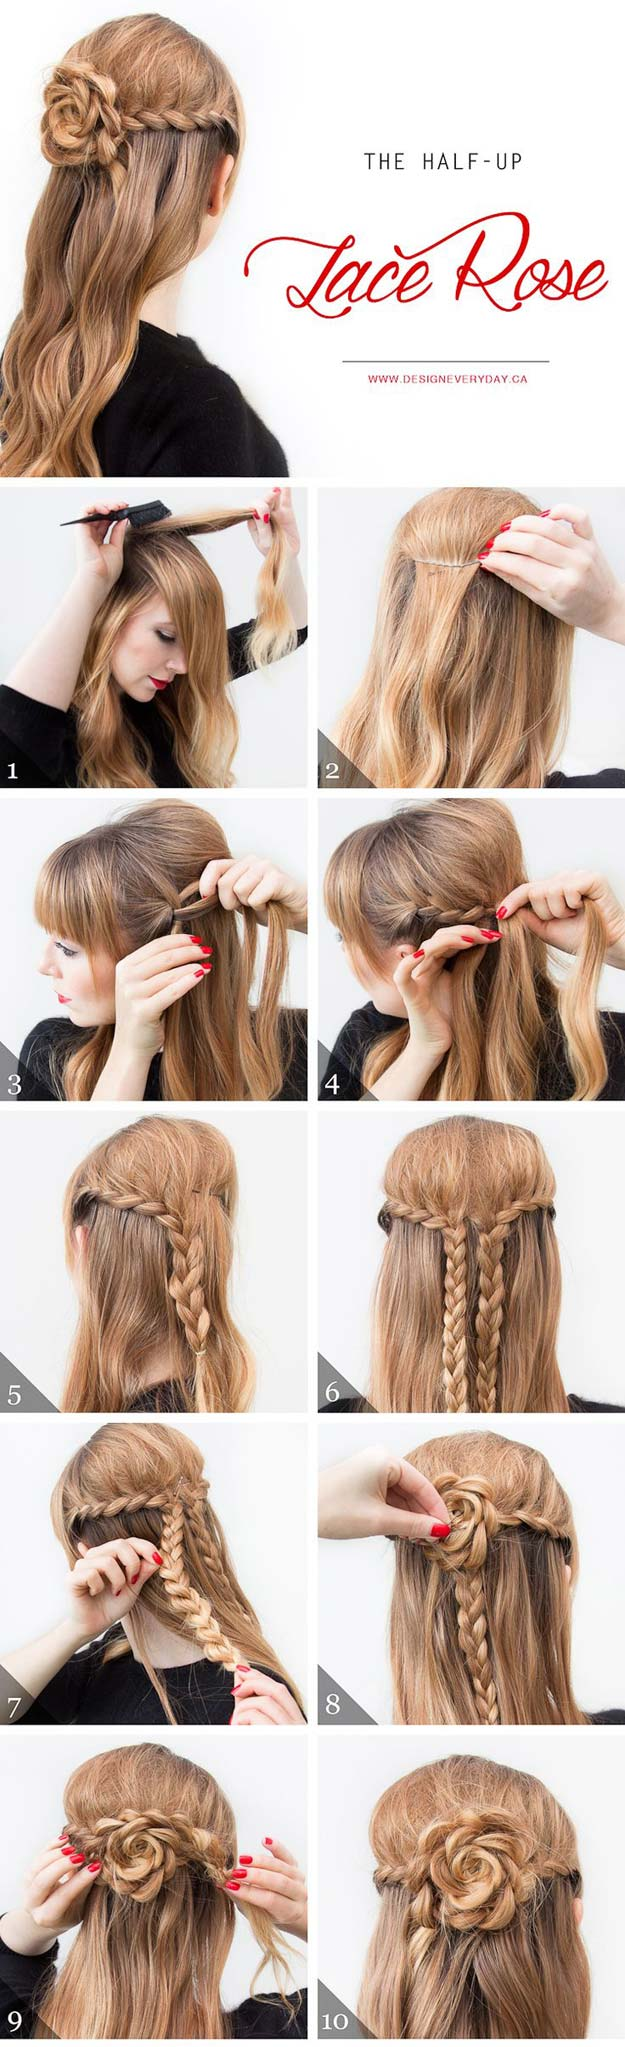 Cool and Easy DIY Hairstyles - The Half Up Lace Rose - Quick and Easy Ideas for Back to School Styles for Medium, Short and Long Hair - Fun Tips and Best Step by Step Tutorials for Teens, Prom, Weddings, Special Occasions and Work. Up dos, Braids, Top Knots and Buns, Super Summer Looks #hairstyles #hair #teens #easyhairstyles #diy #beauty